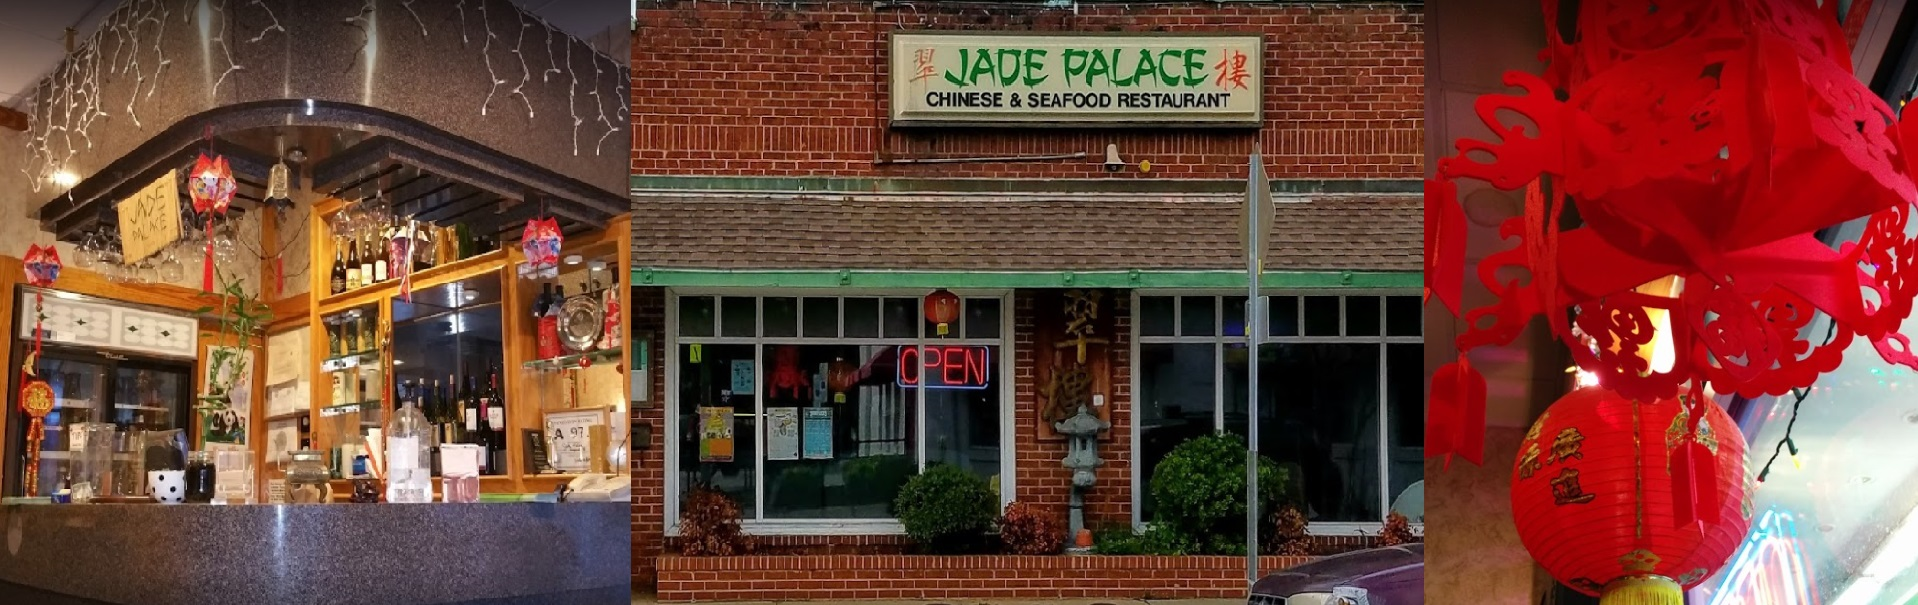 Your favorite Chinese food at Jade Palace Restaurant